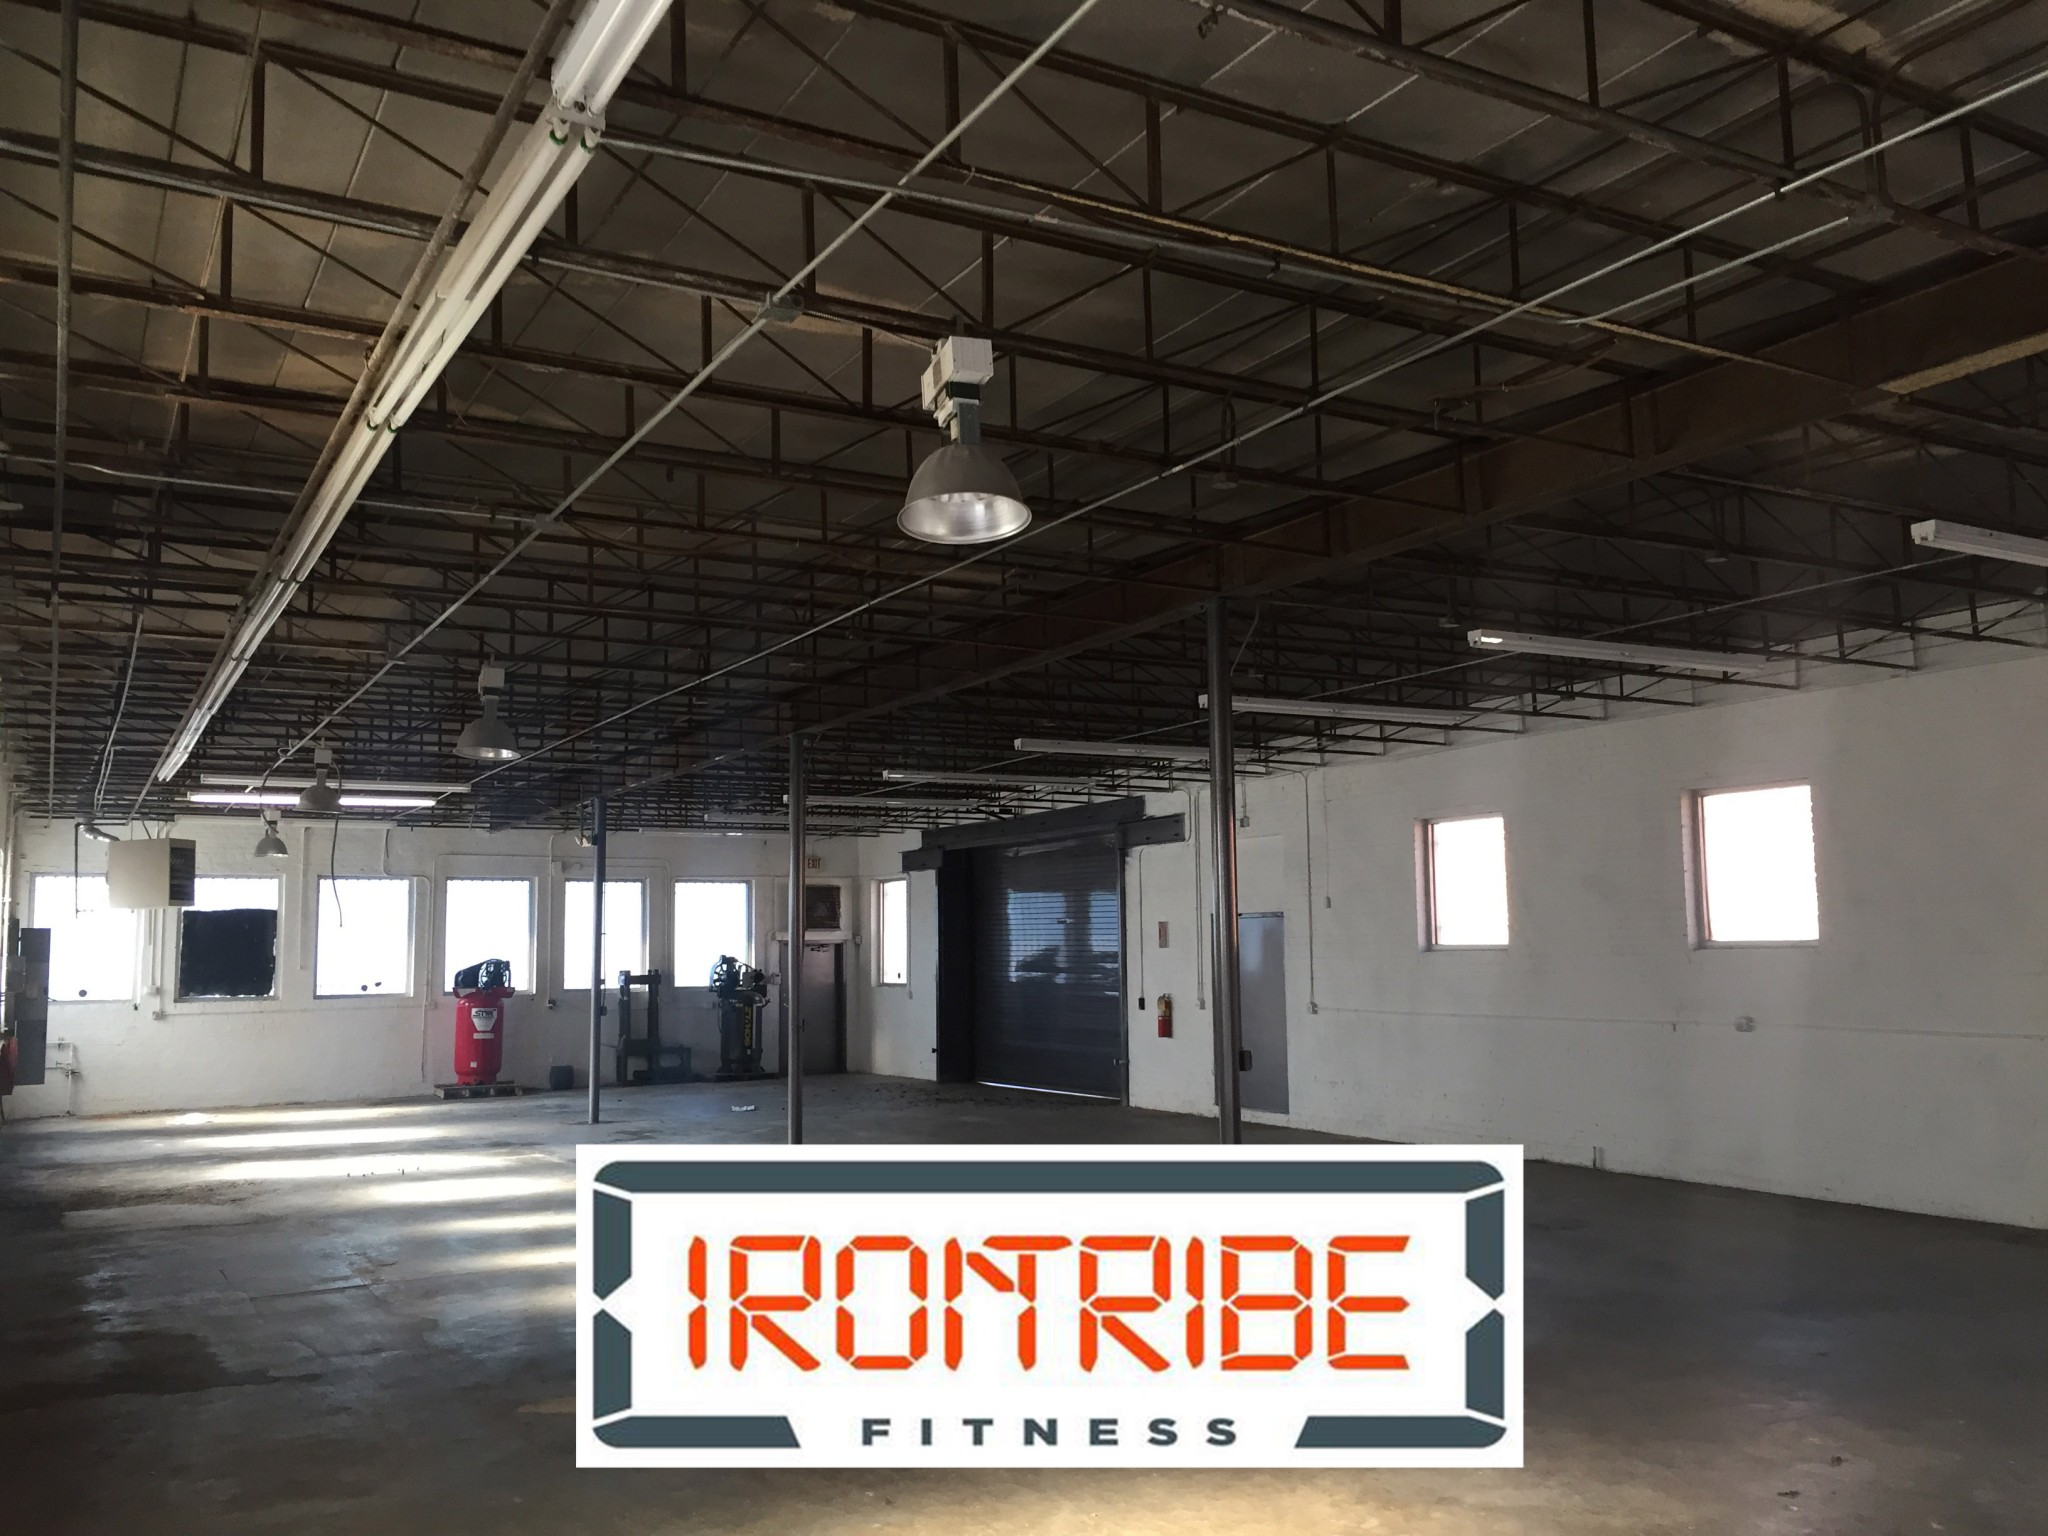 Iron Tribe Fitness will move into the industrial warehouse space pictured above.